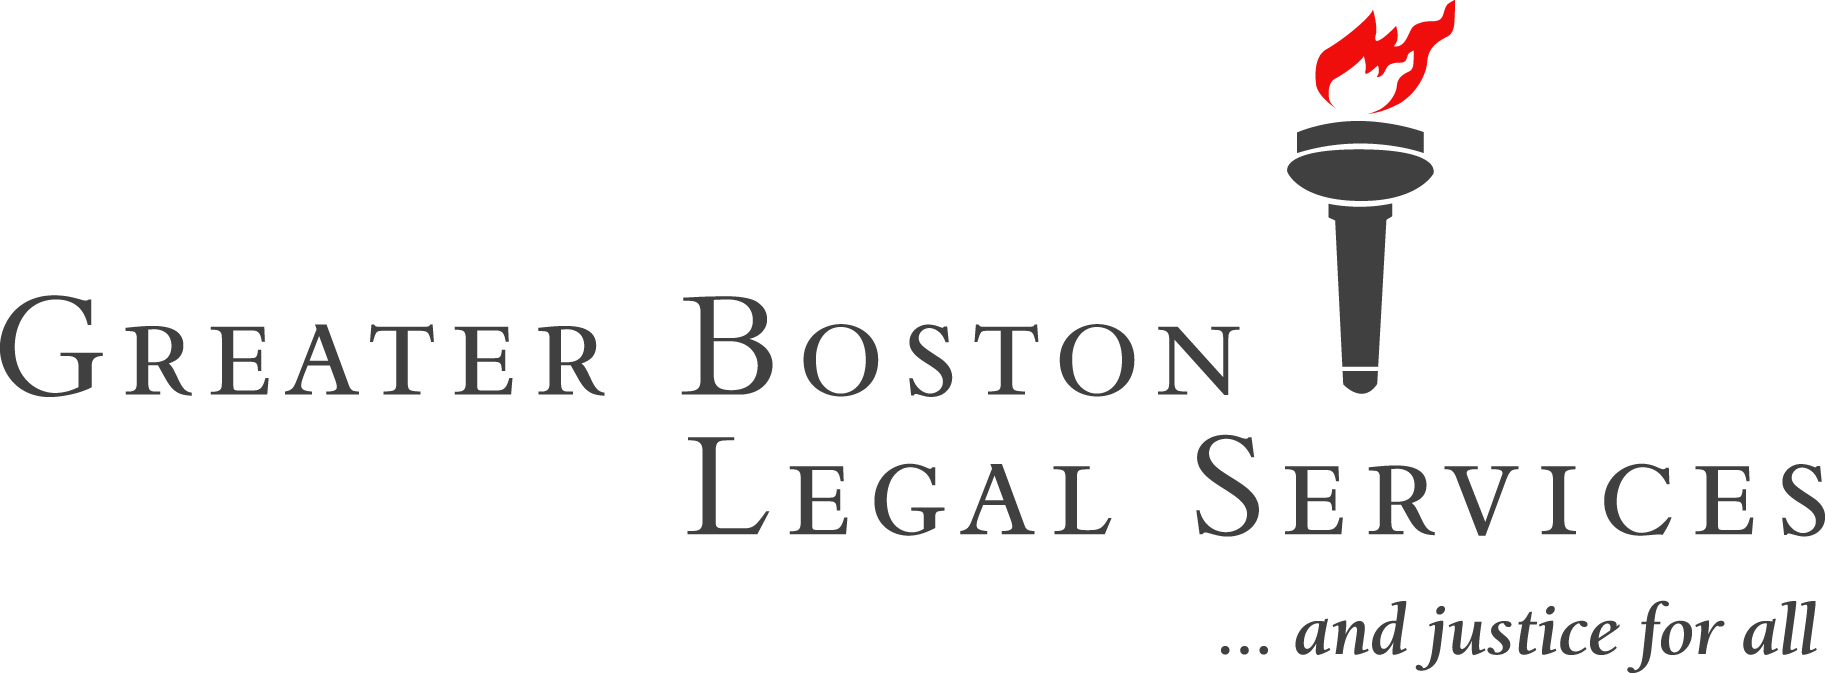 Greater Boston Legal Services logo